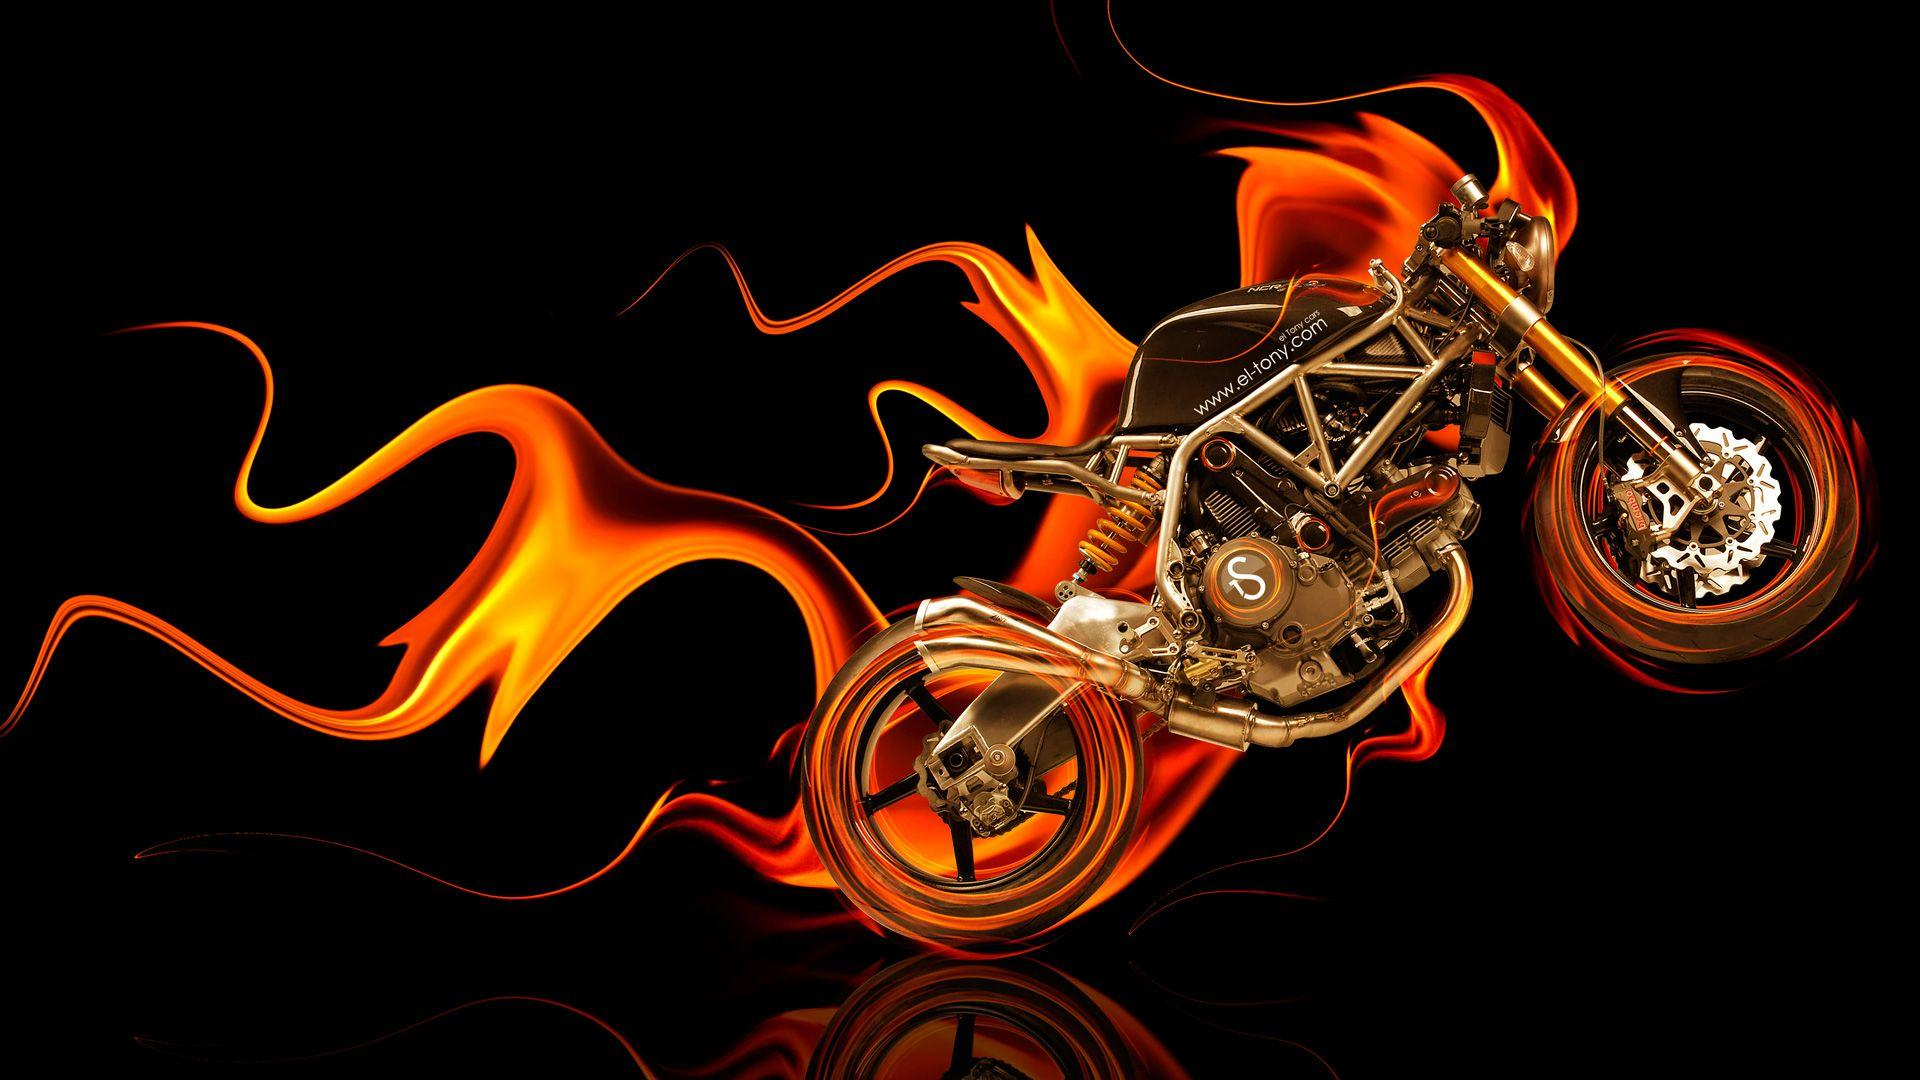 NCR M4 Side Super Fire Abstract Bike 2014